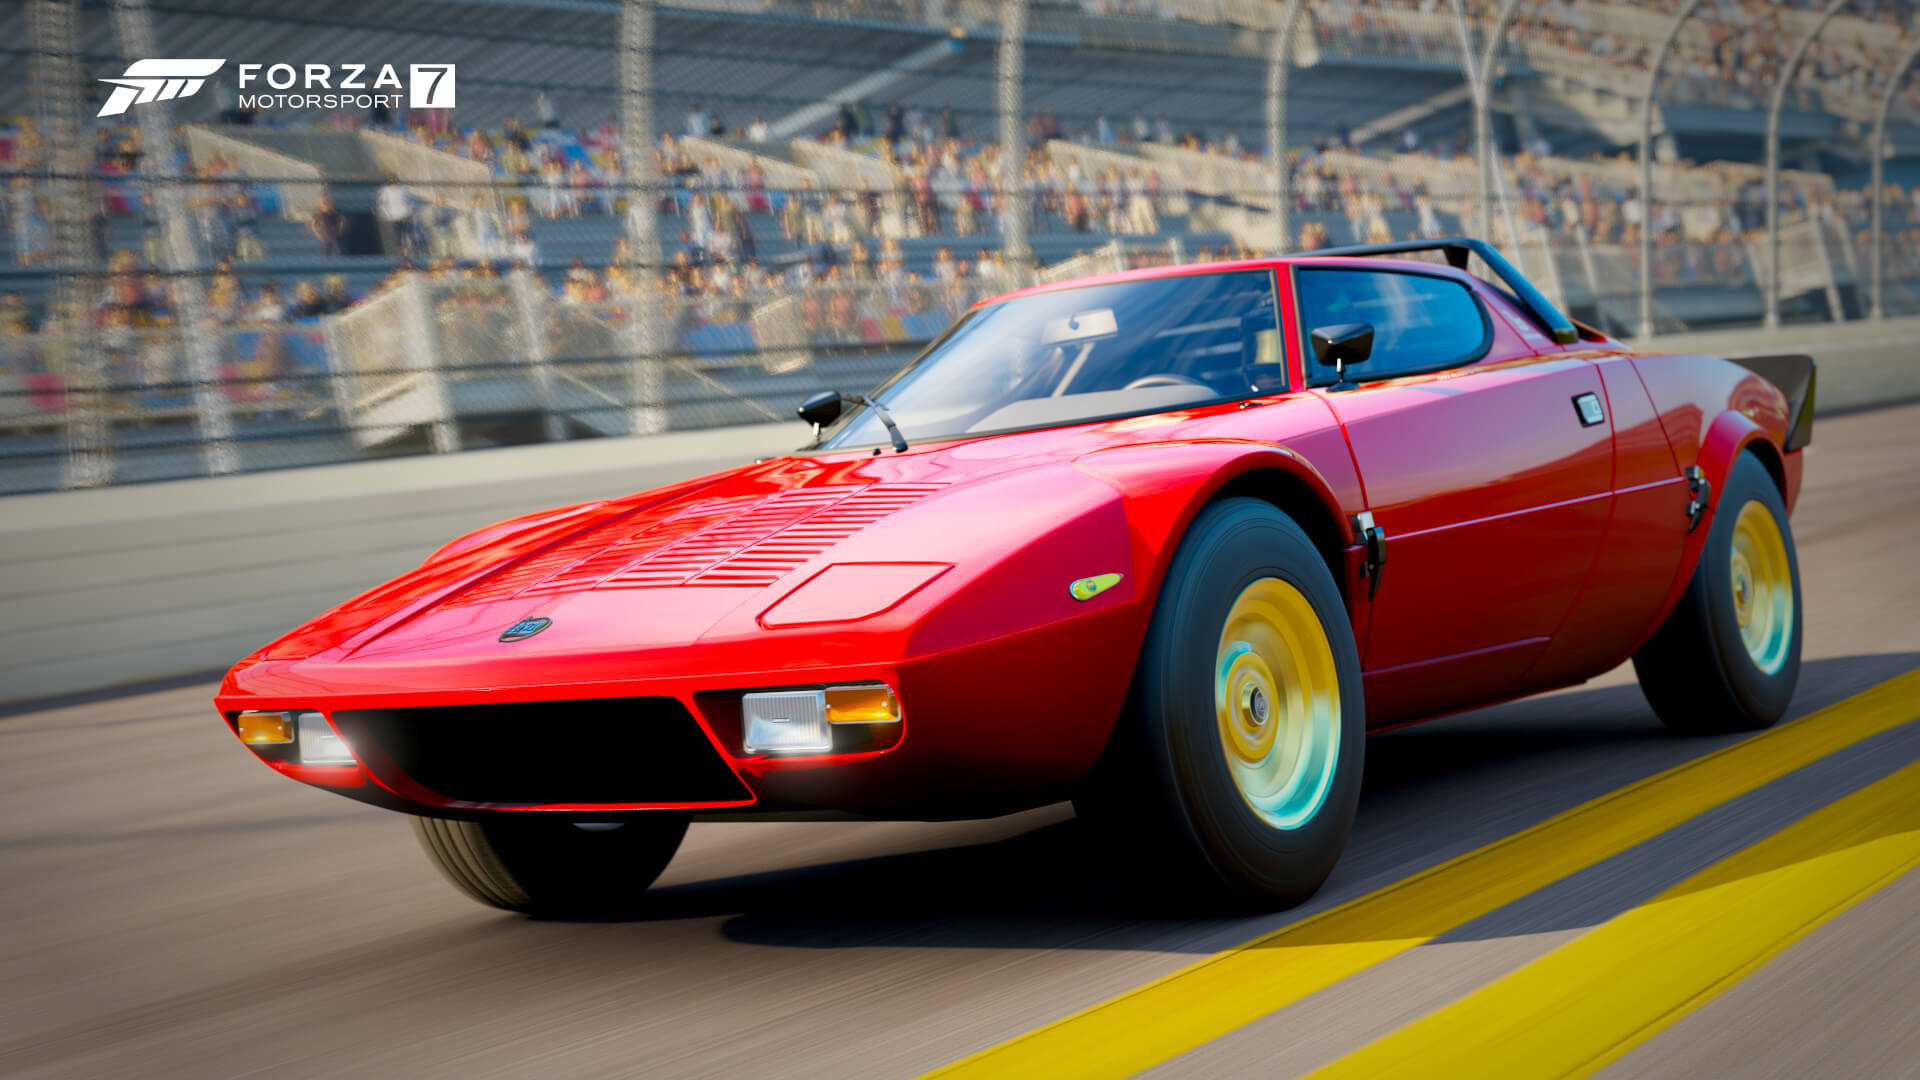 How To Unlock Exclusive Cars In Forza Motorsport 7